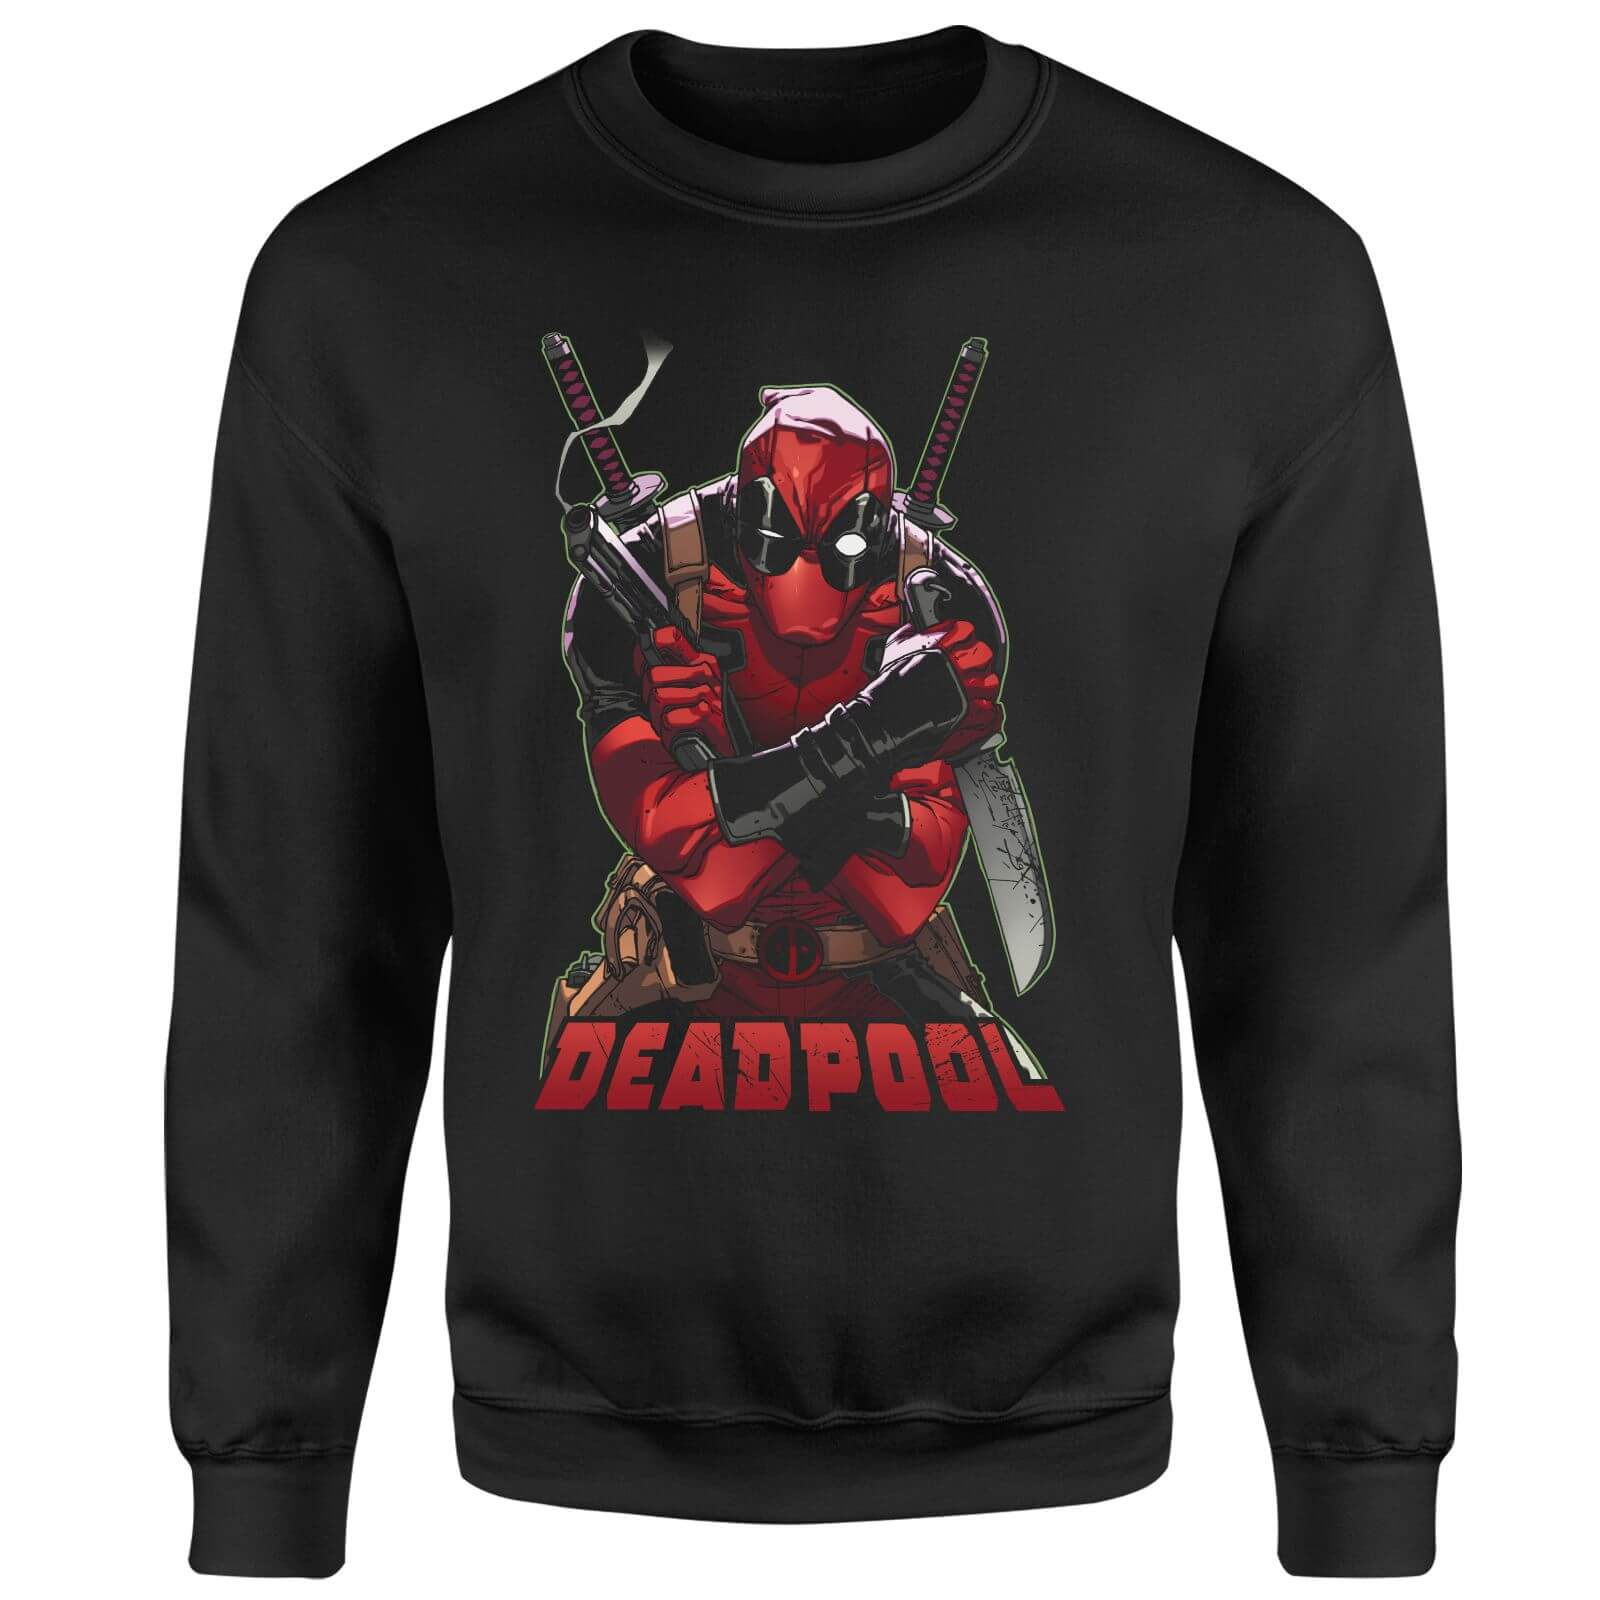 Marvel Deadpool Ready For Action Sweatshirt - Black